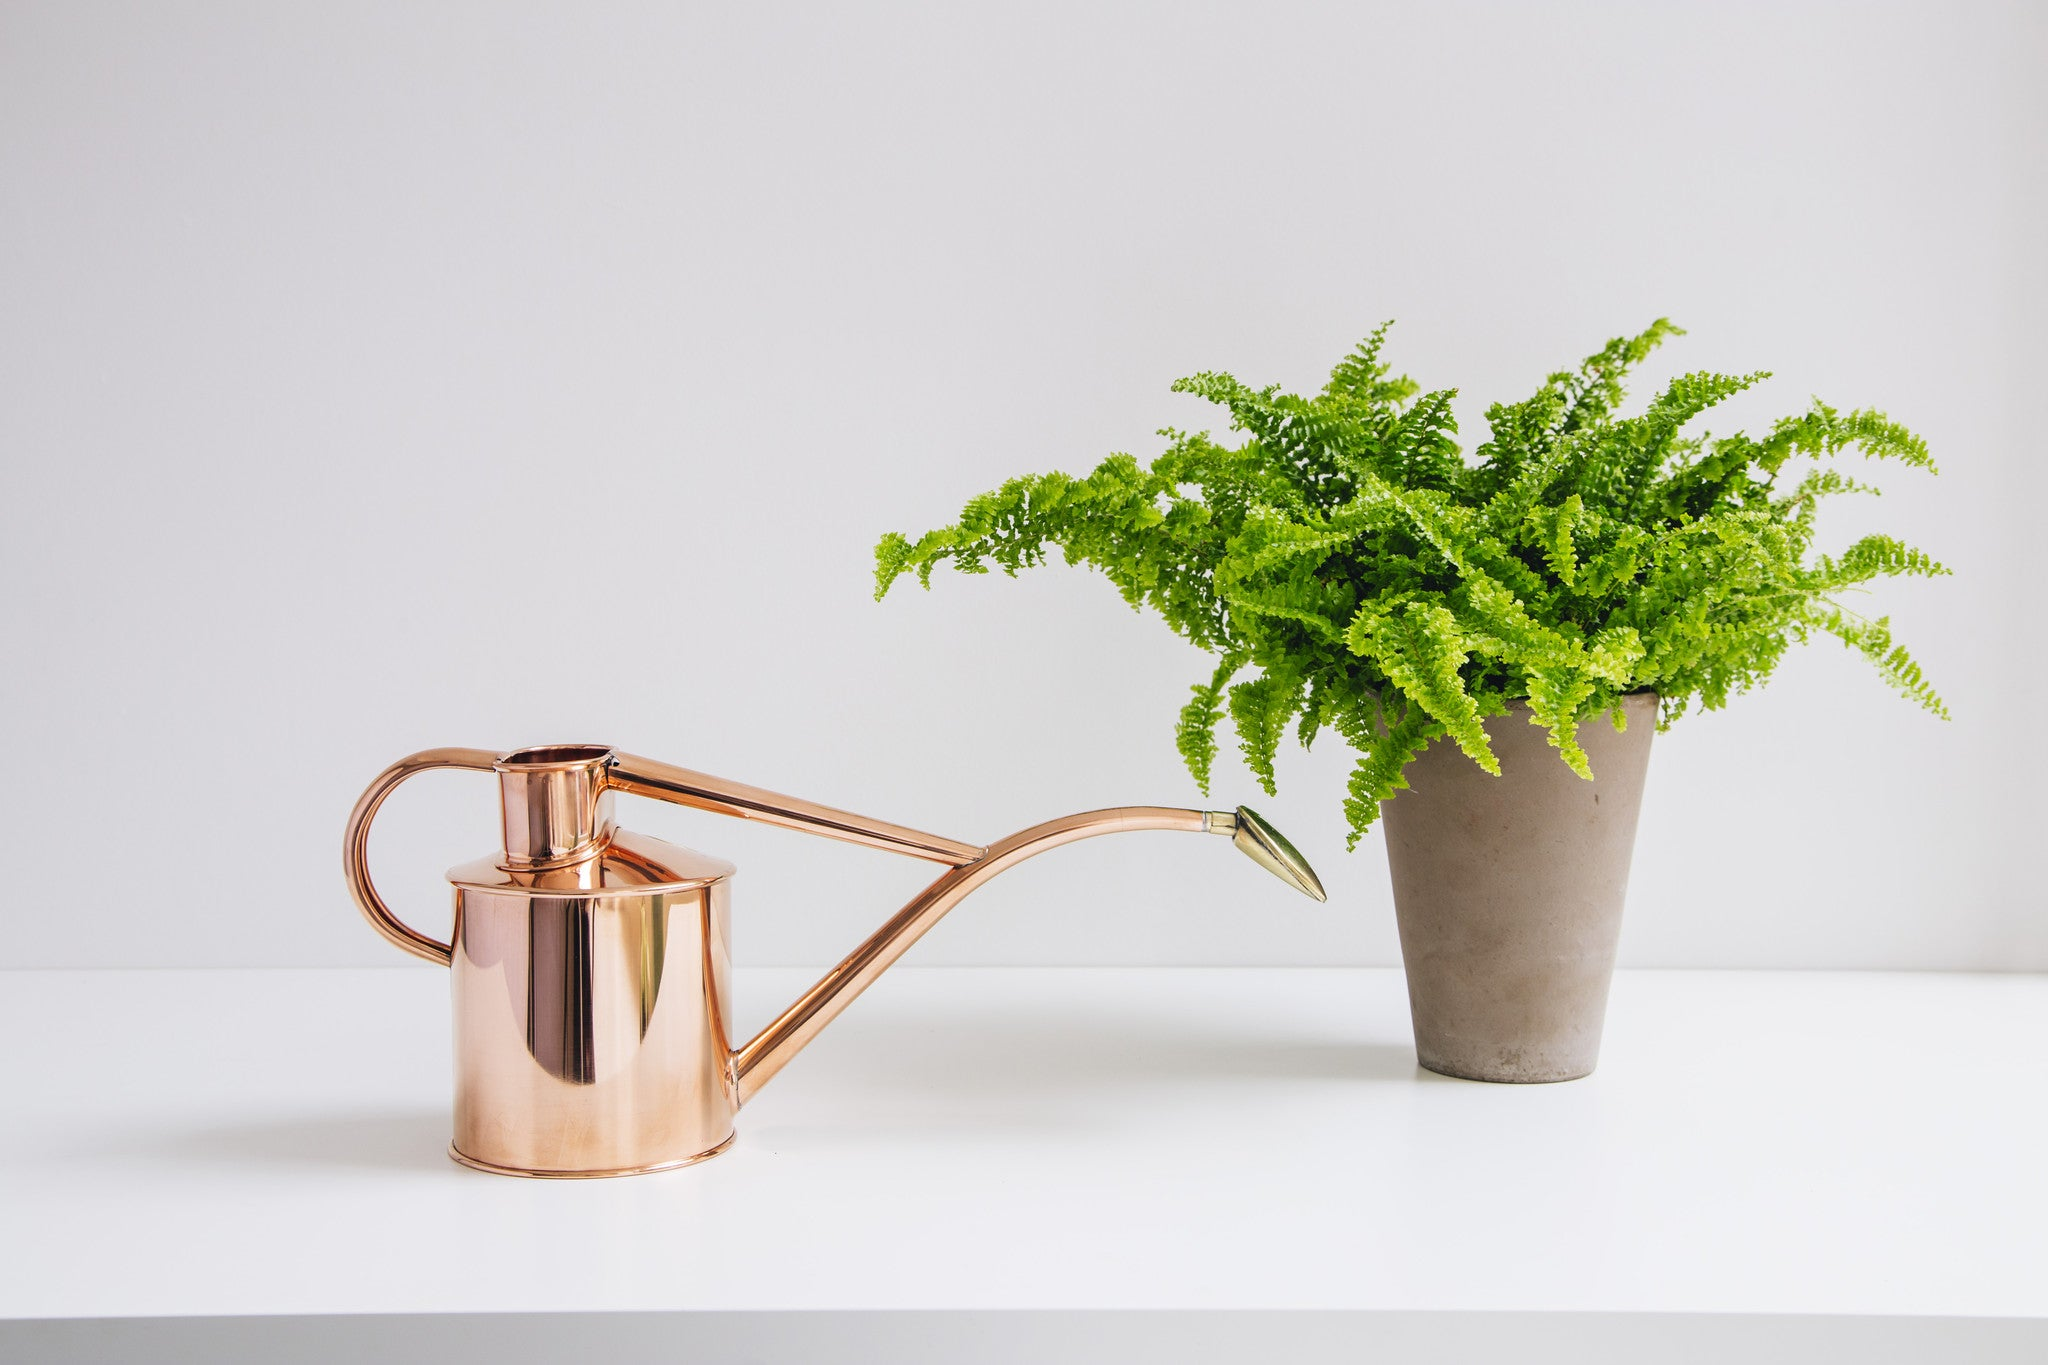 Haws Indoor Copper Watering Can - How its made